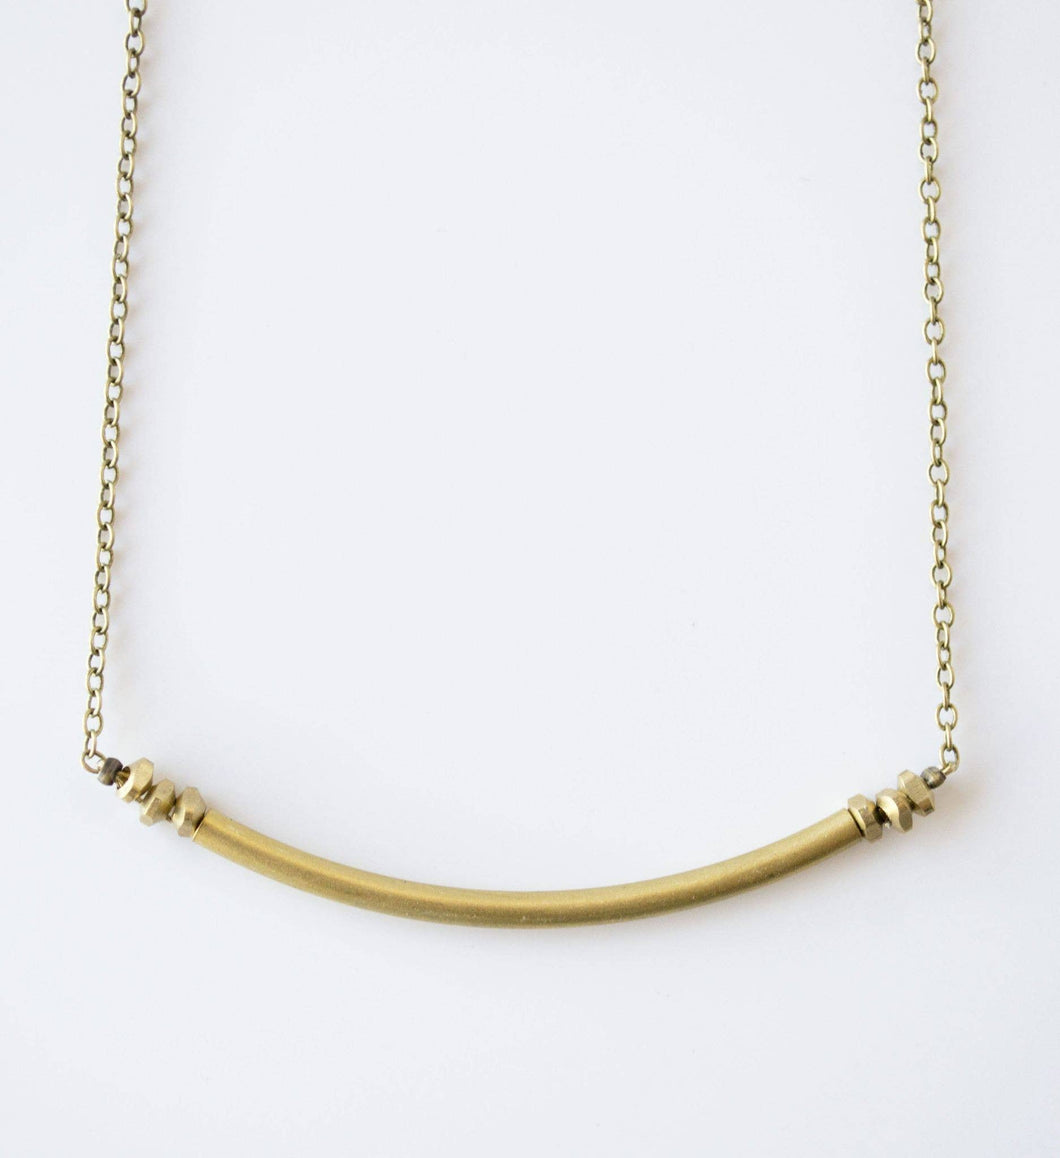 Dainty Gold Necklace or The Skinny Tube